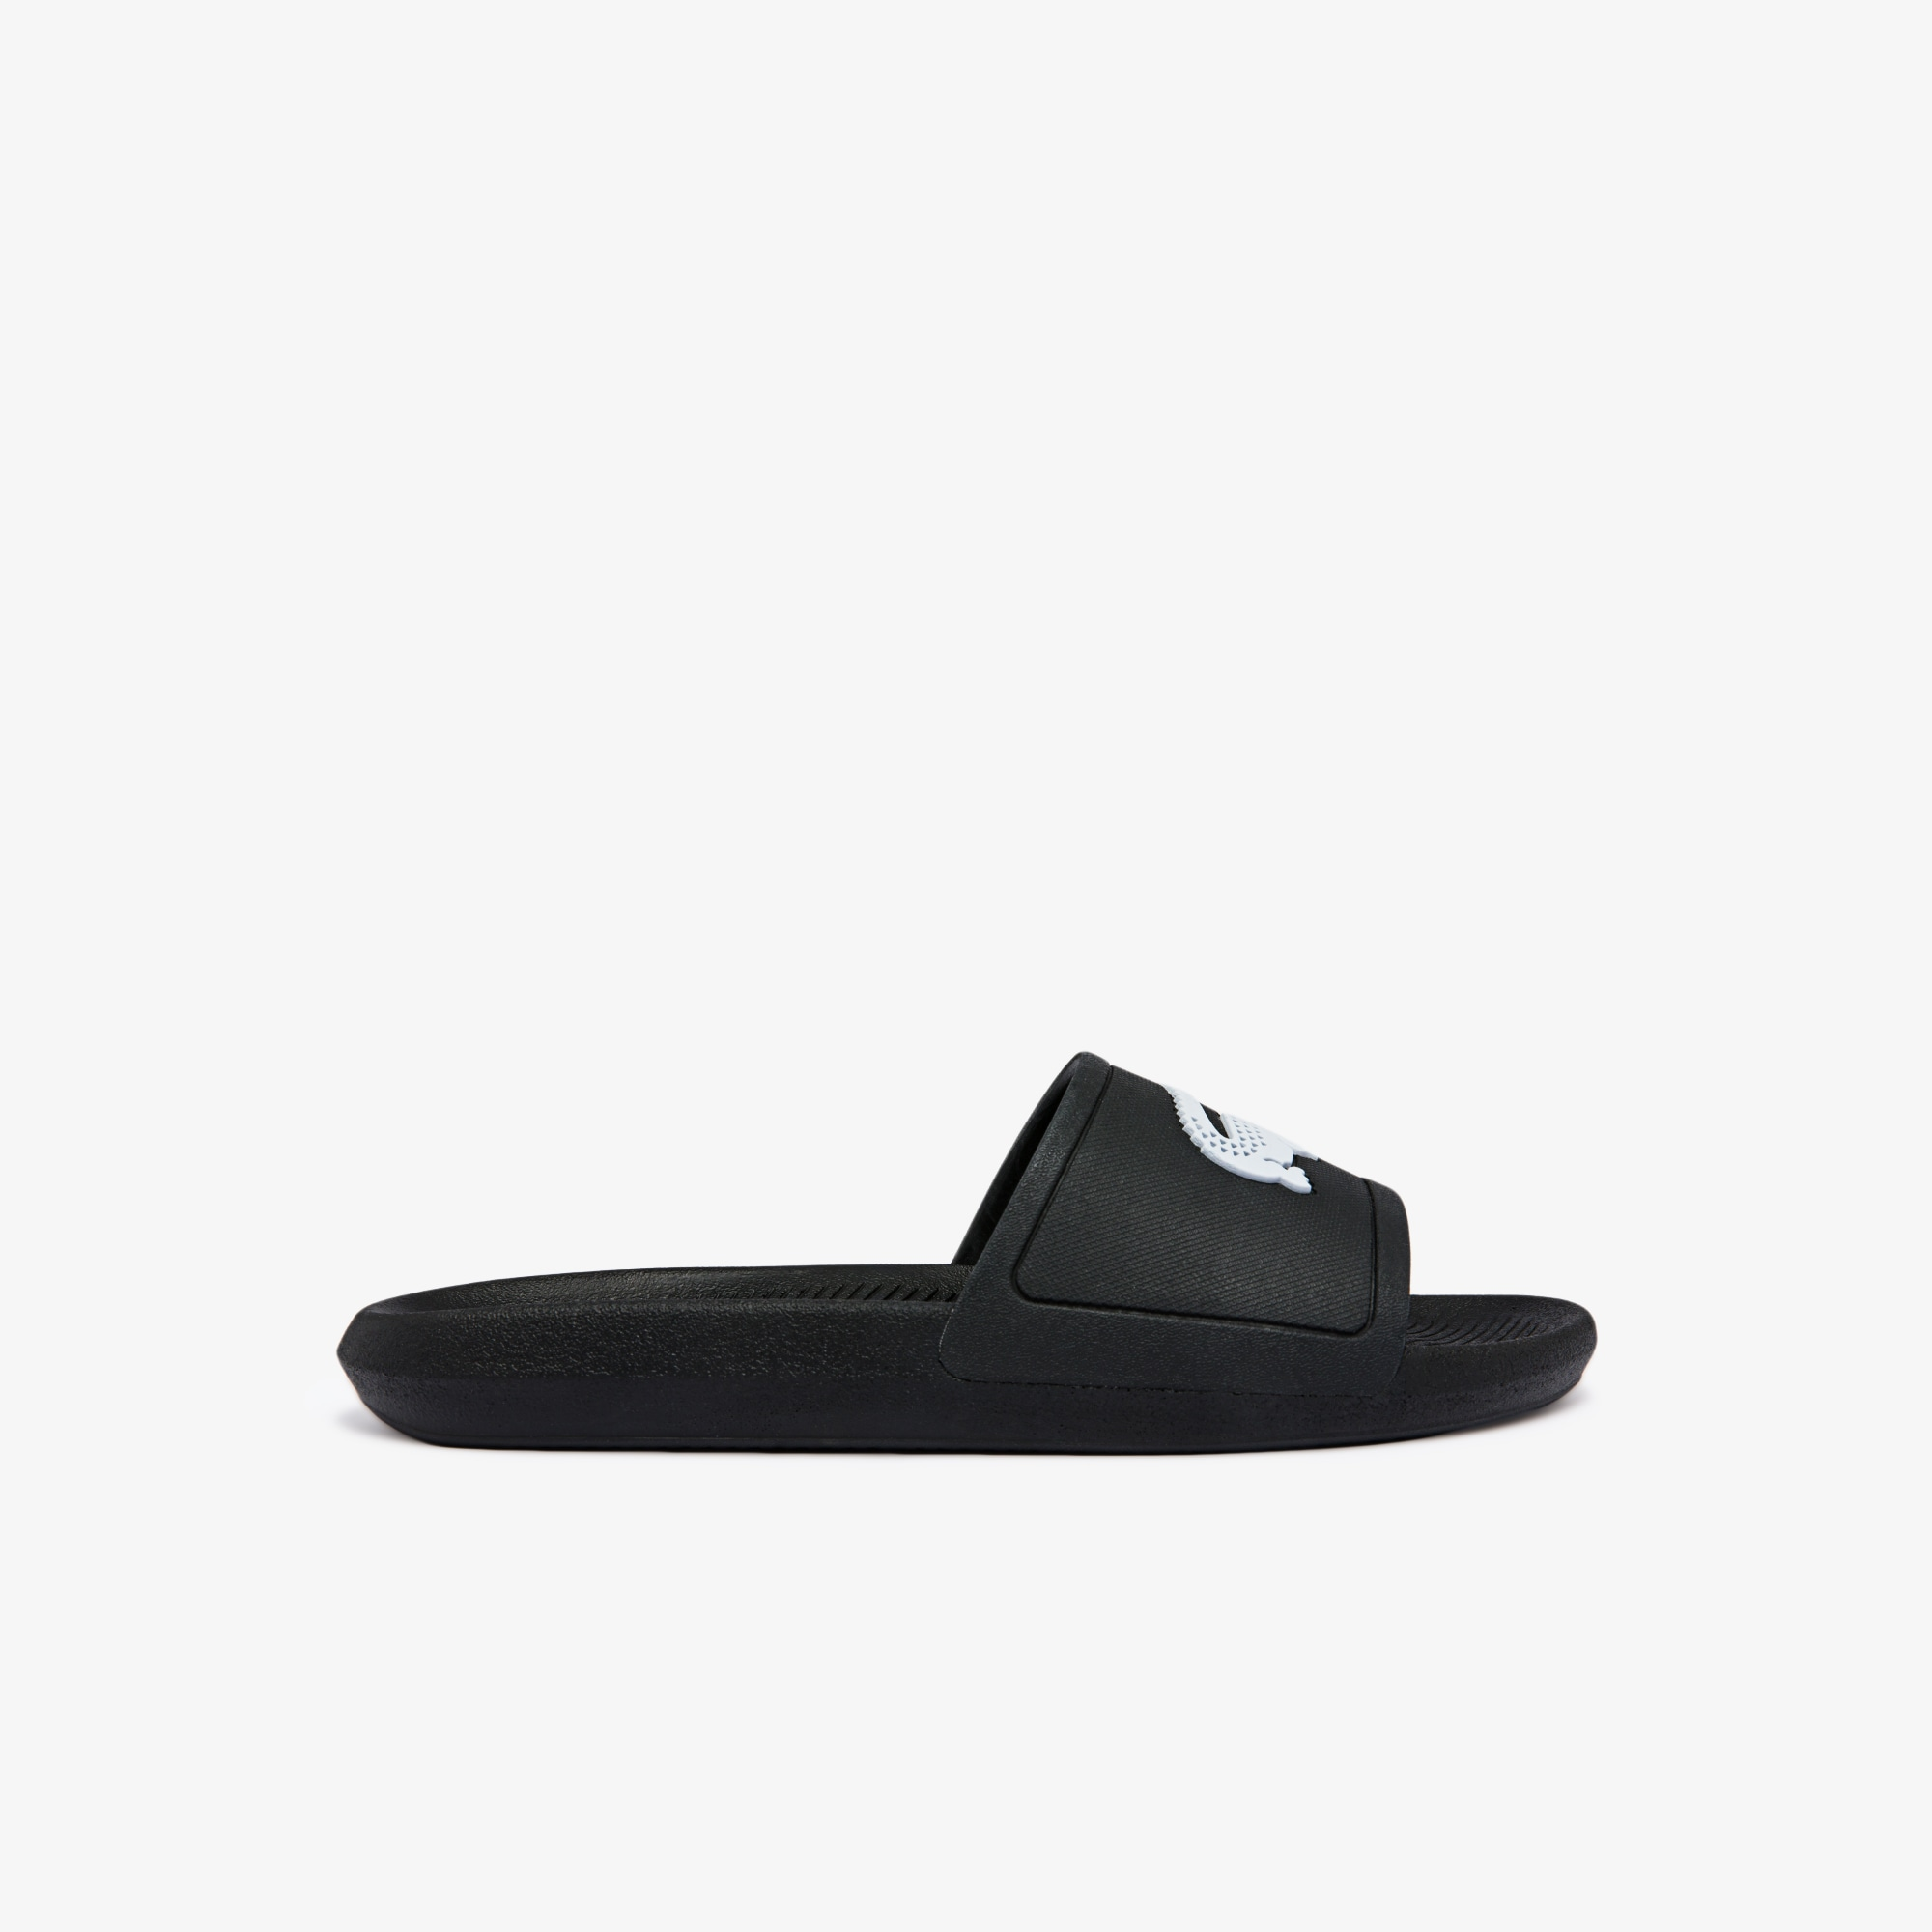 a76aae0c5 + 3 colors. Men s Croco Slide Rubber Slides